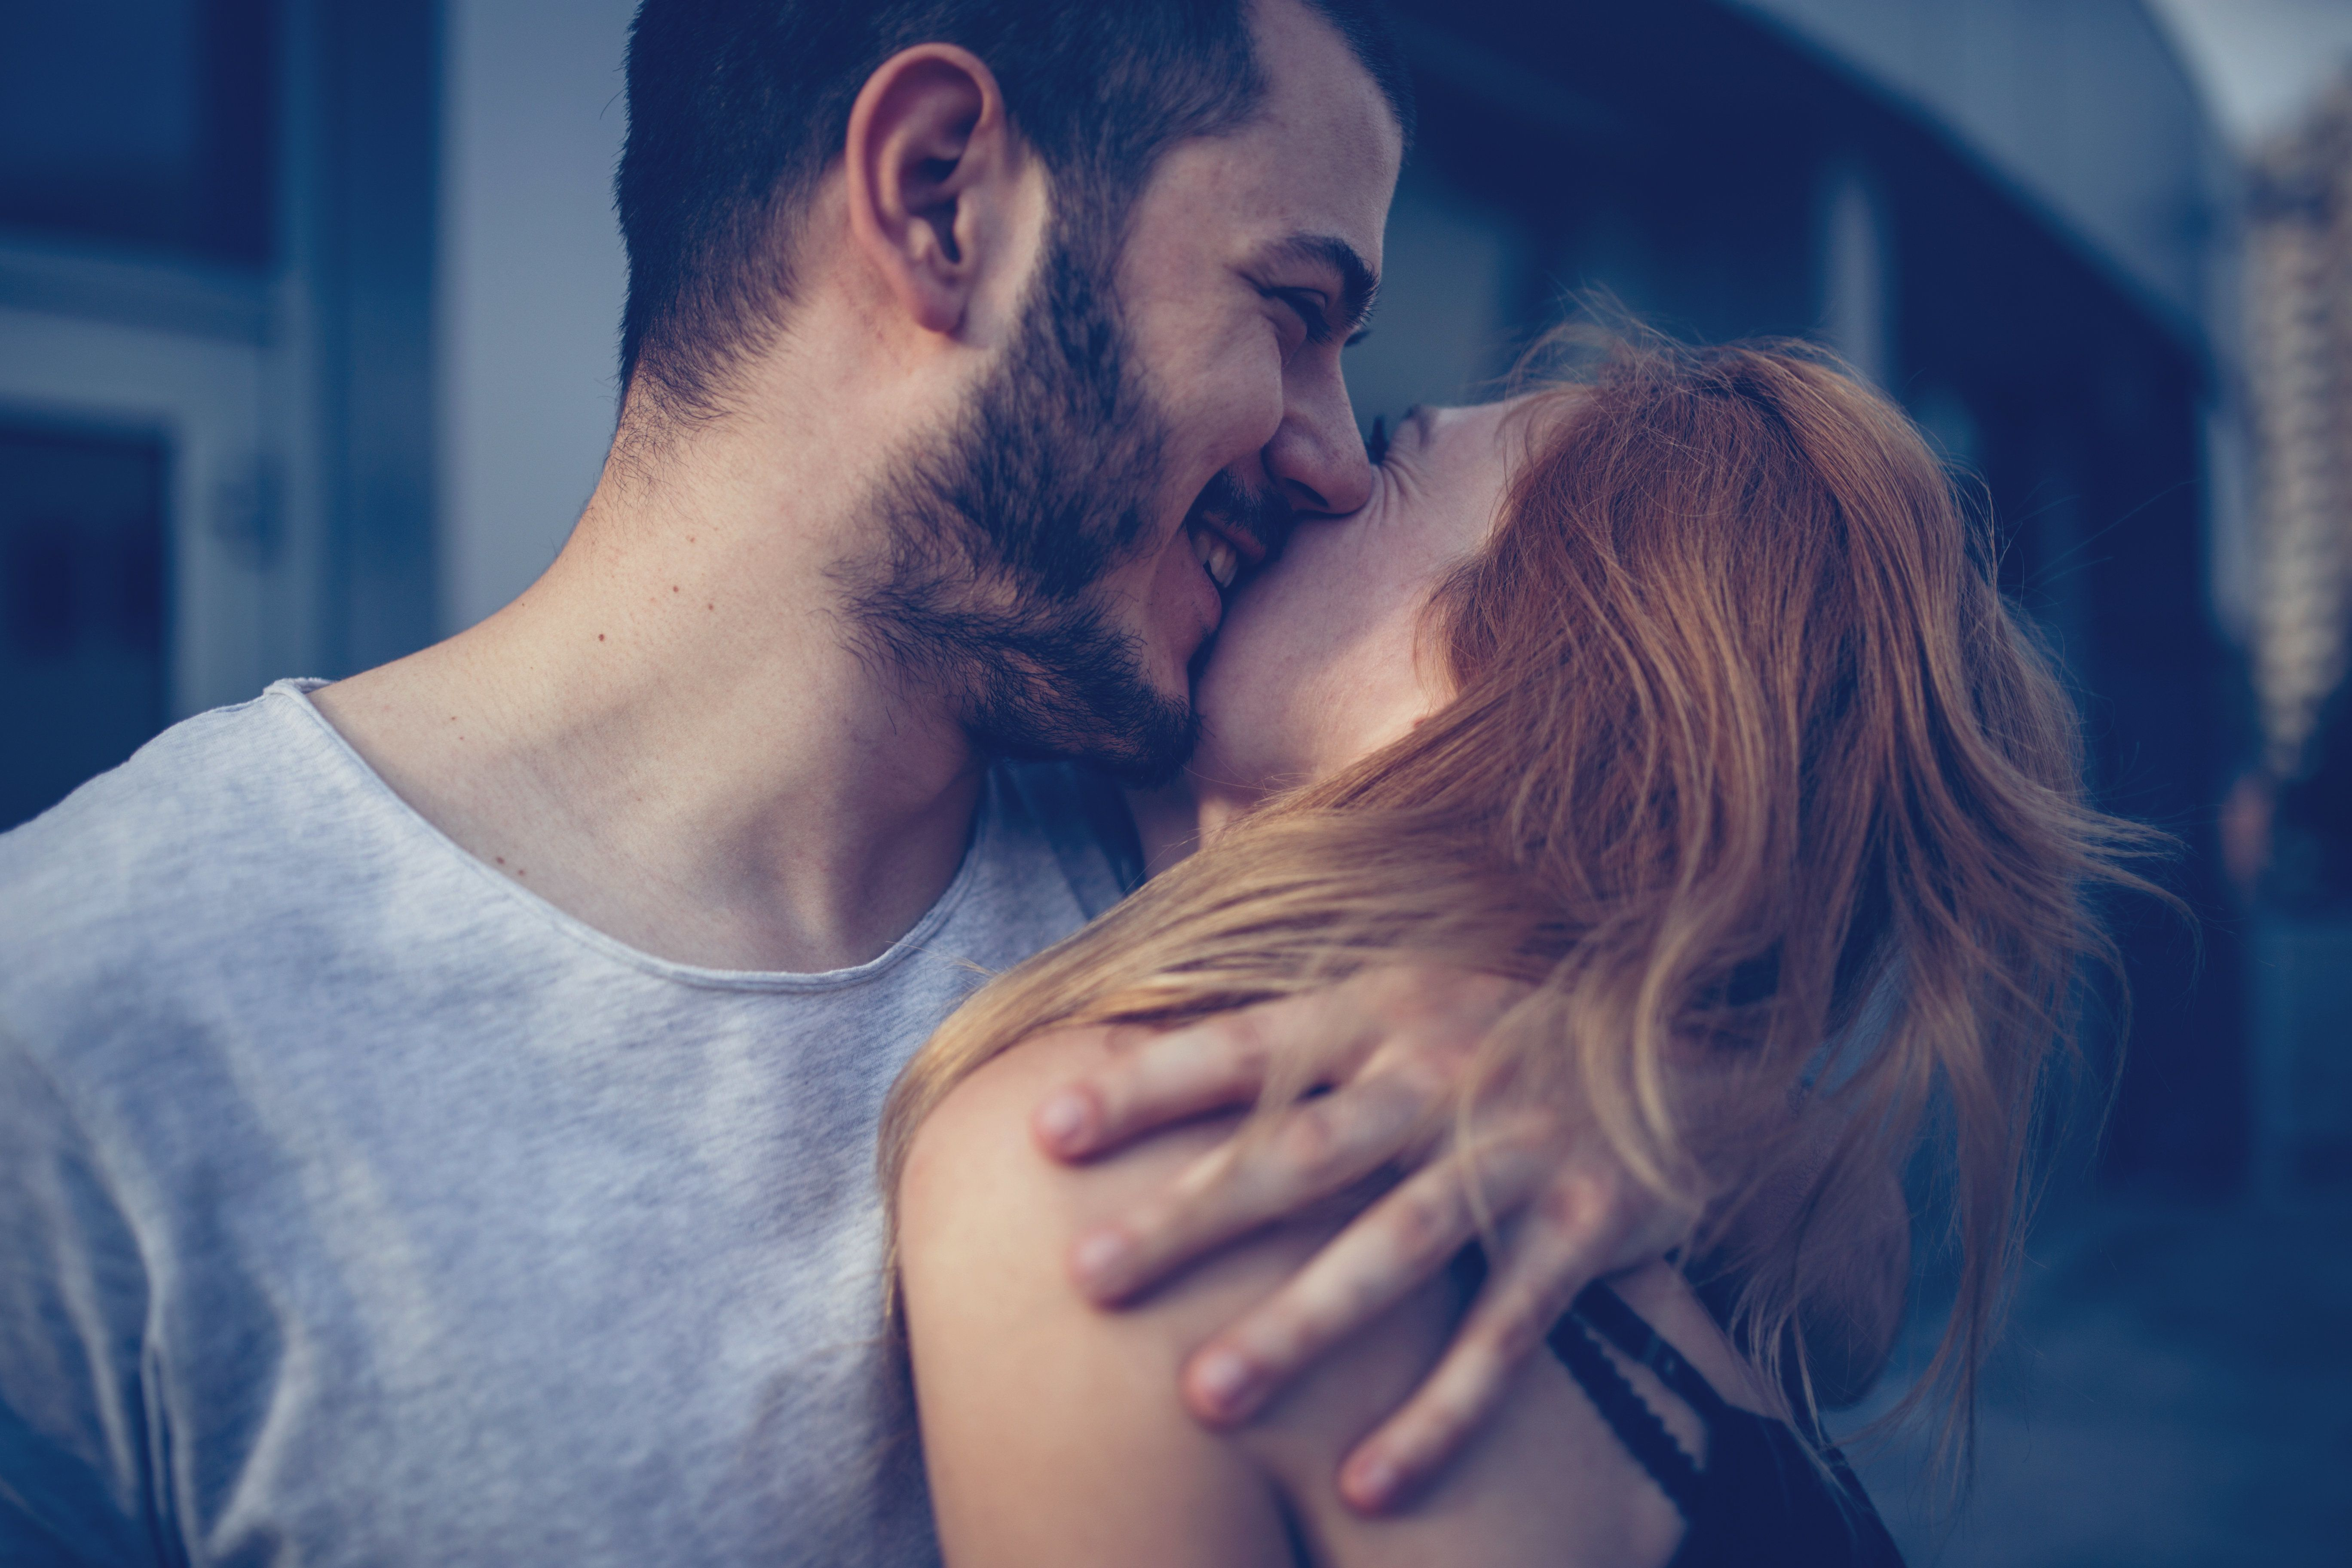 8 Underrated Qualities To Look For In A Spouse, According To